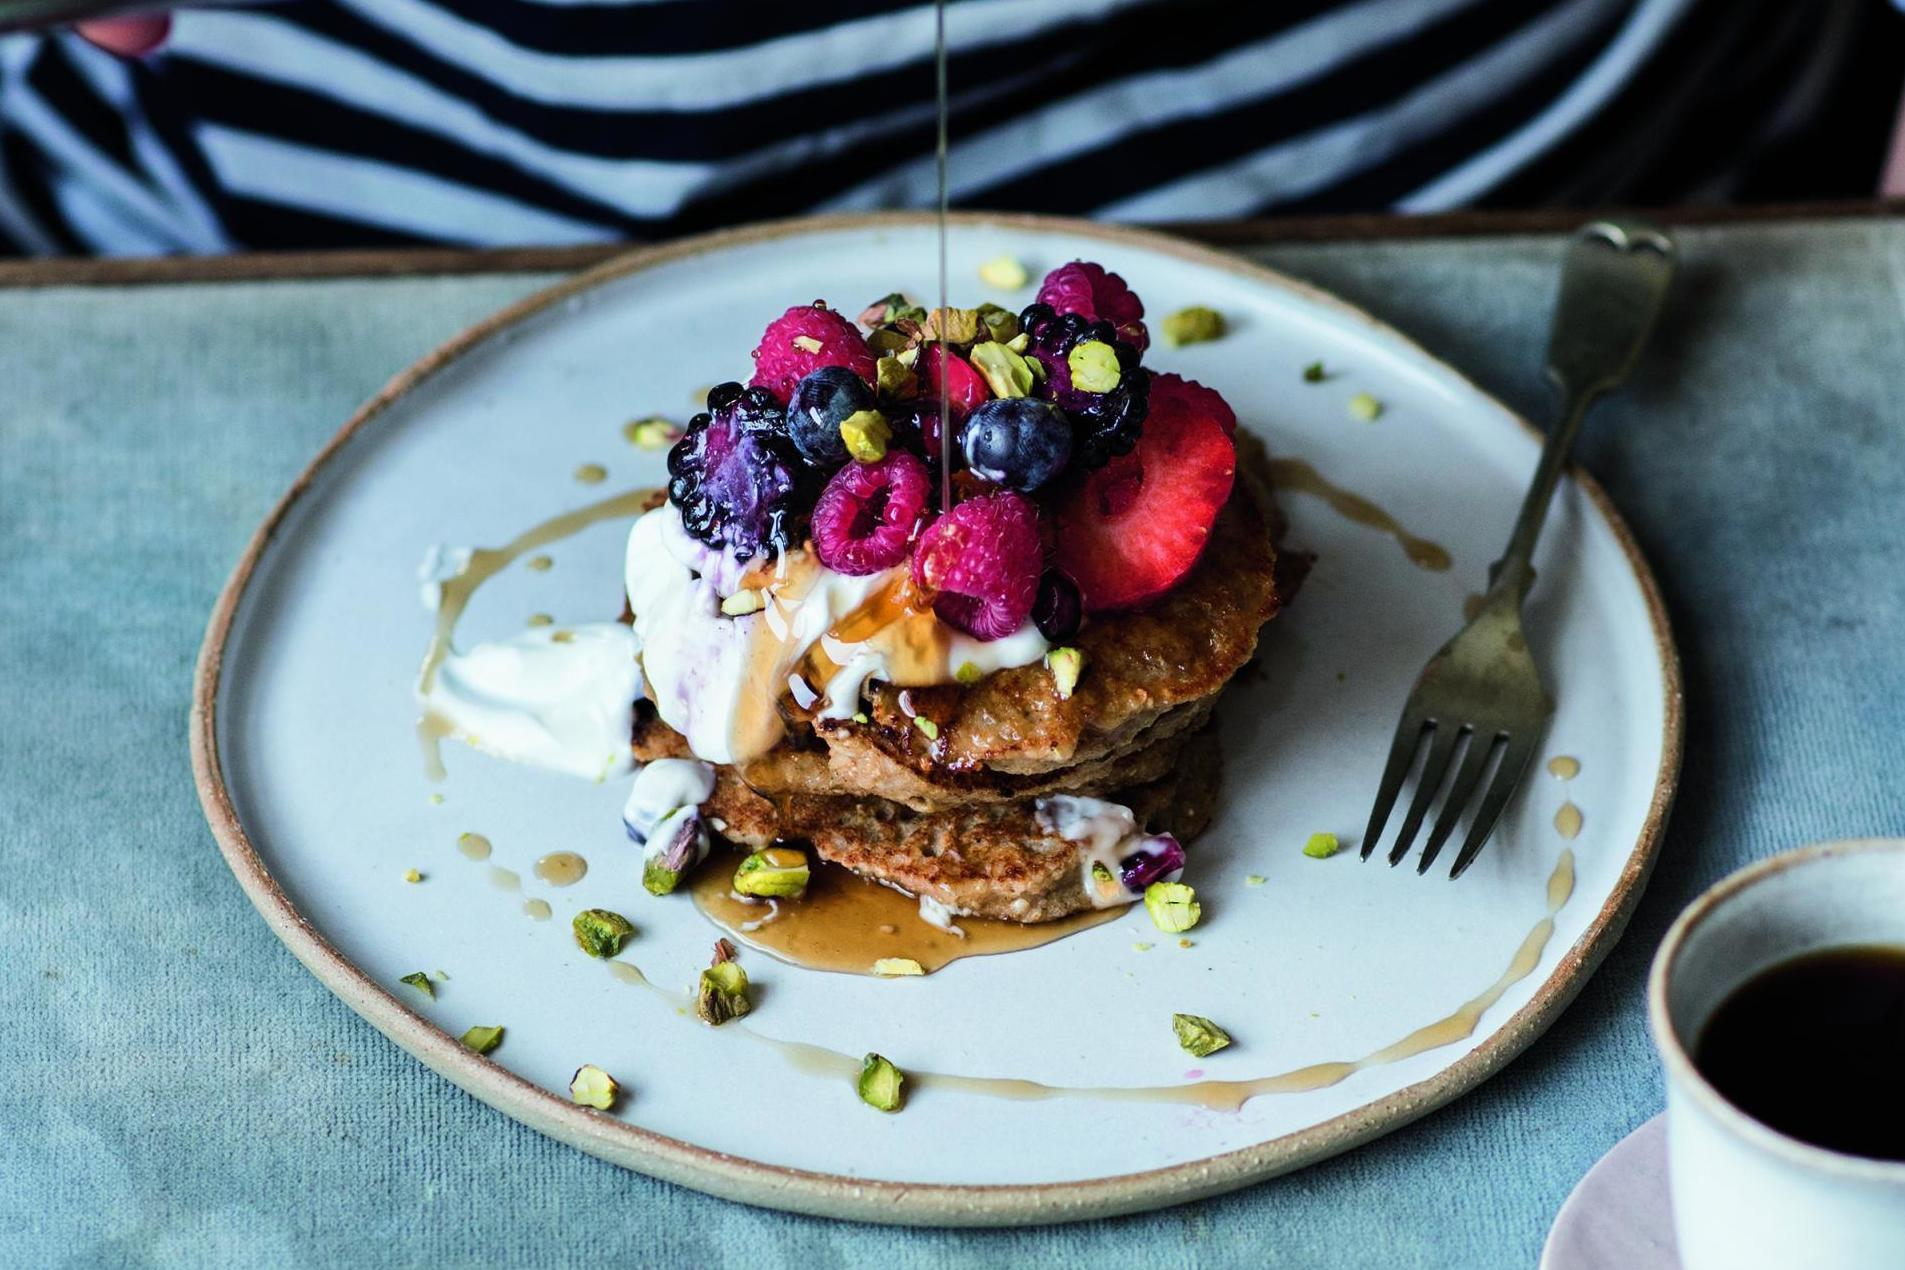 Pancake Day 2018: Five best pancake recipes for vegans and gluten-free diets